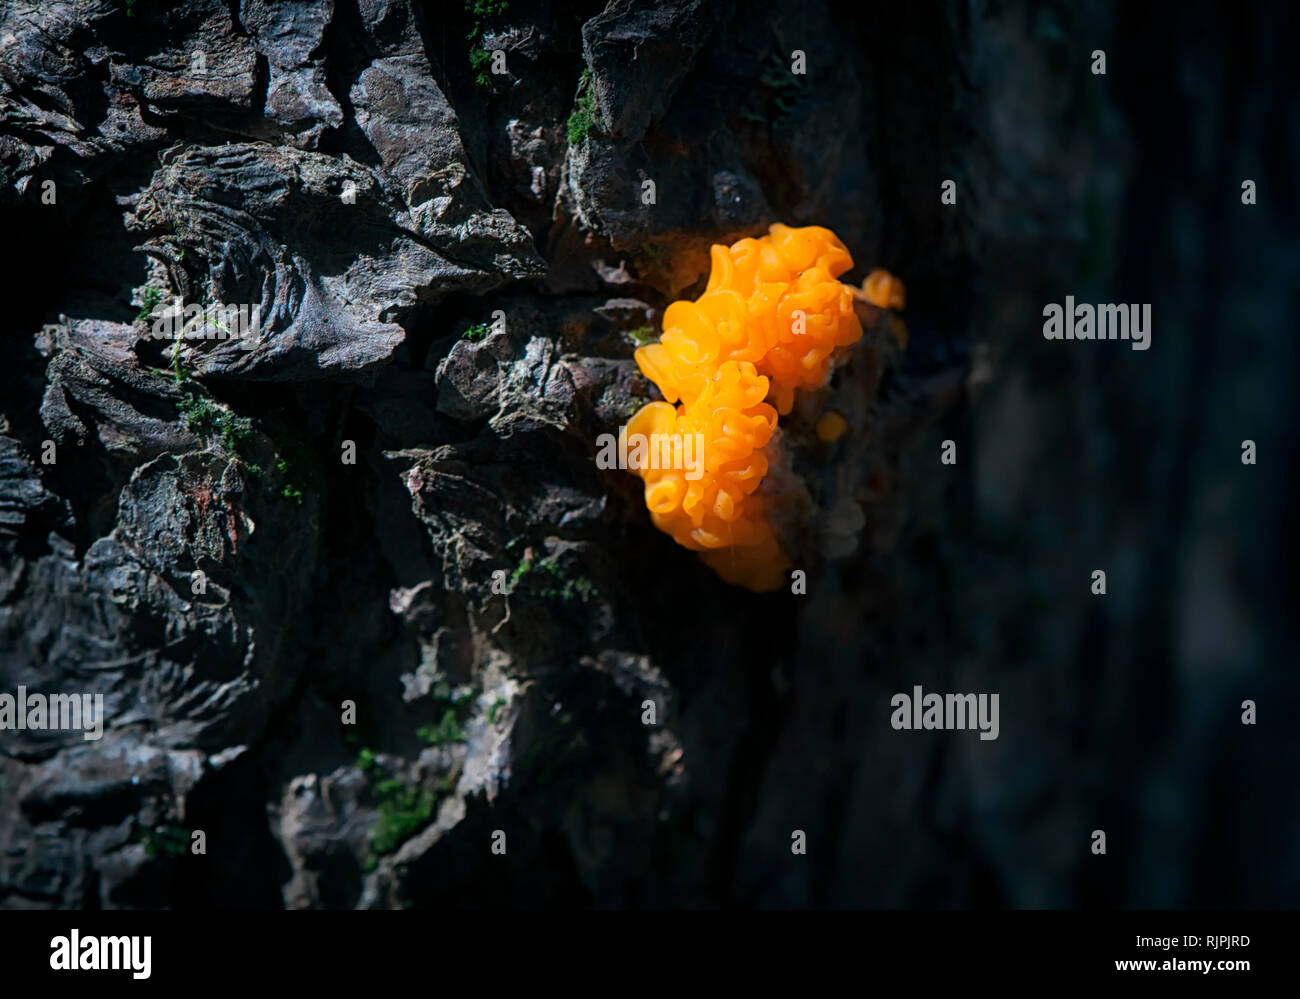 A orange witches butter mushroom or tremella aurantia growing on a tree within Burr Pond State Park in Torrington, Connecticut. - Stock Image